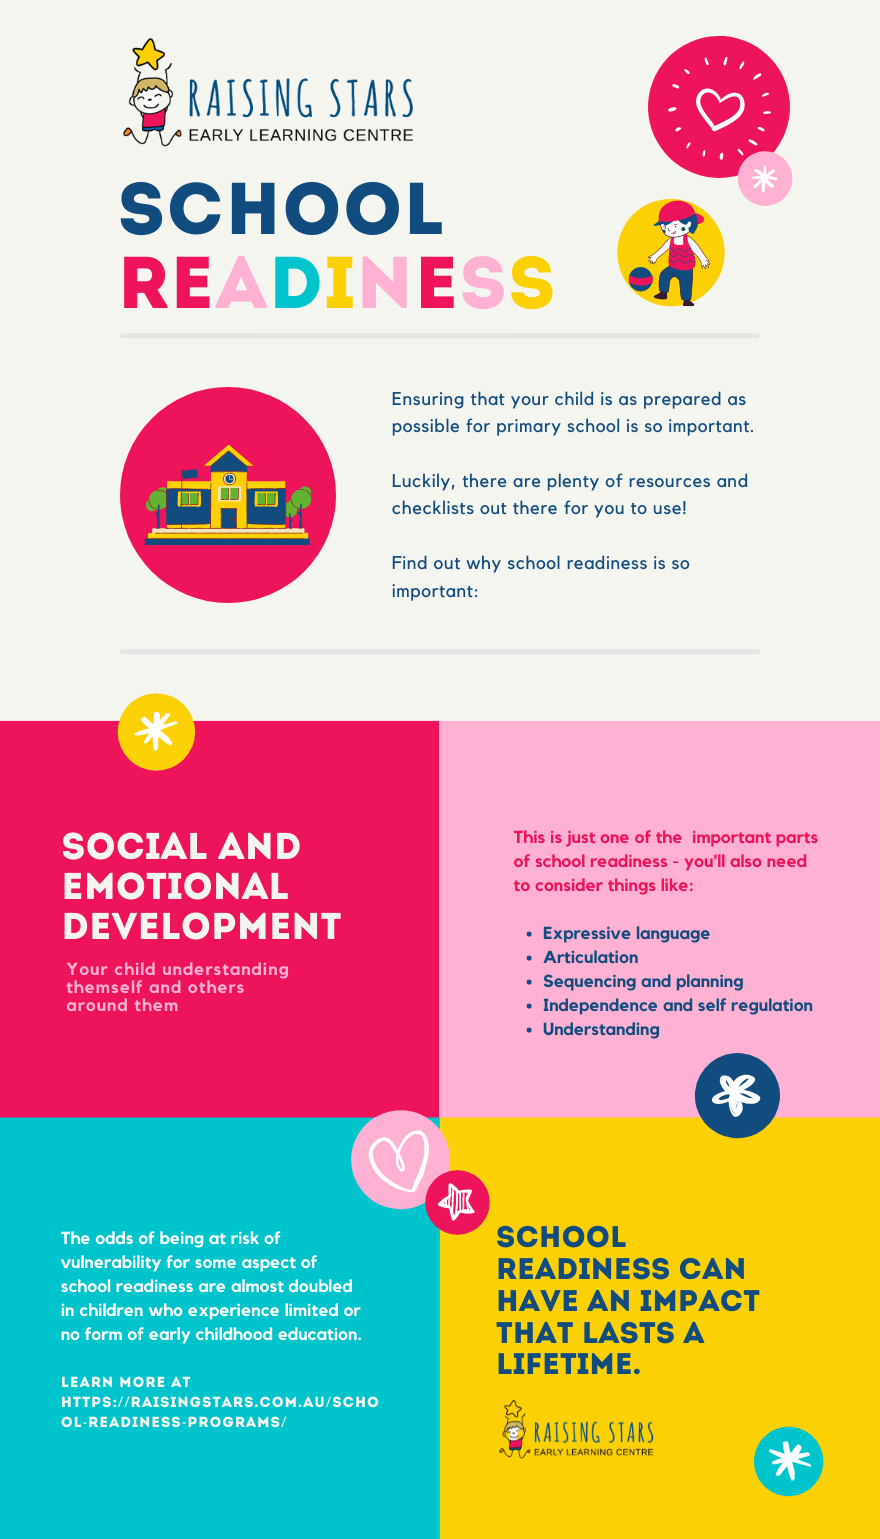 school readiness - an overview